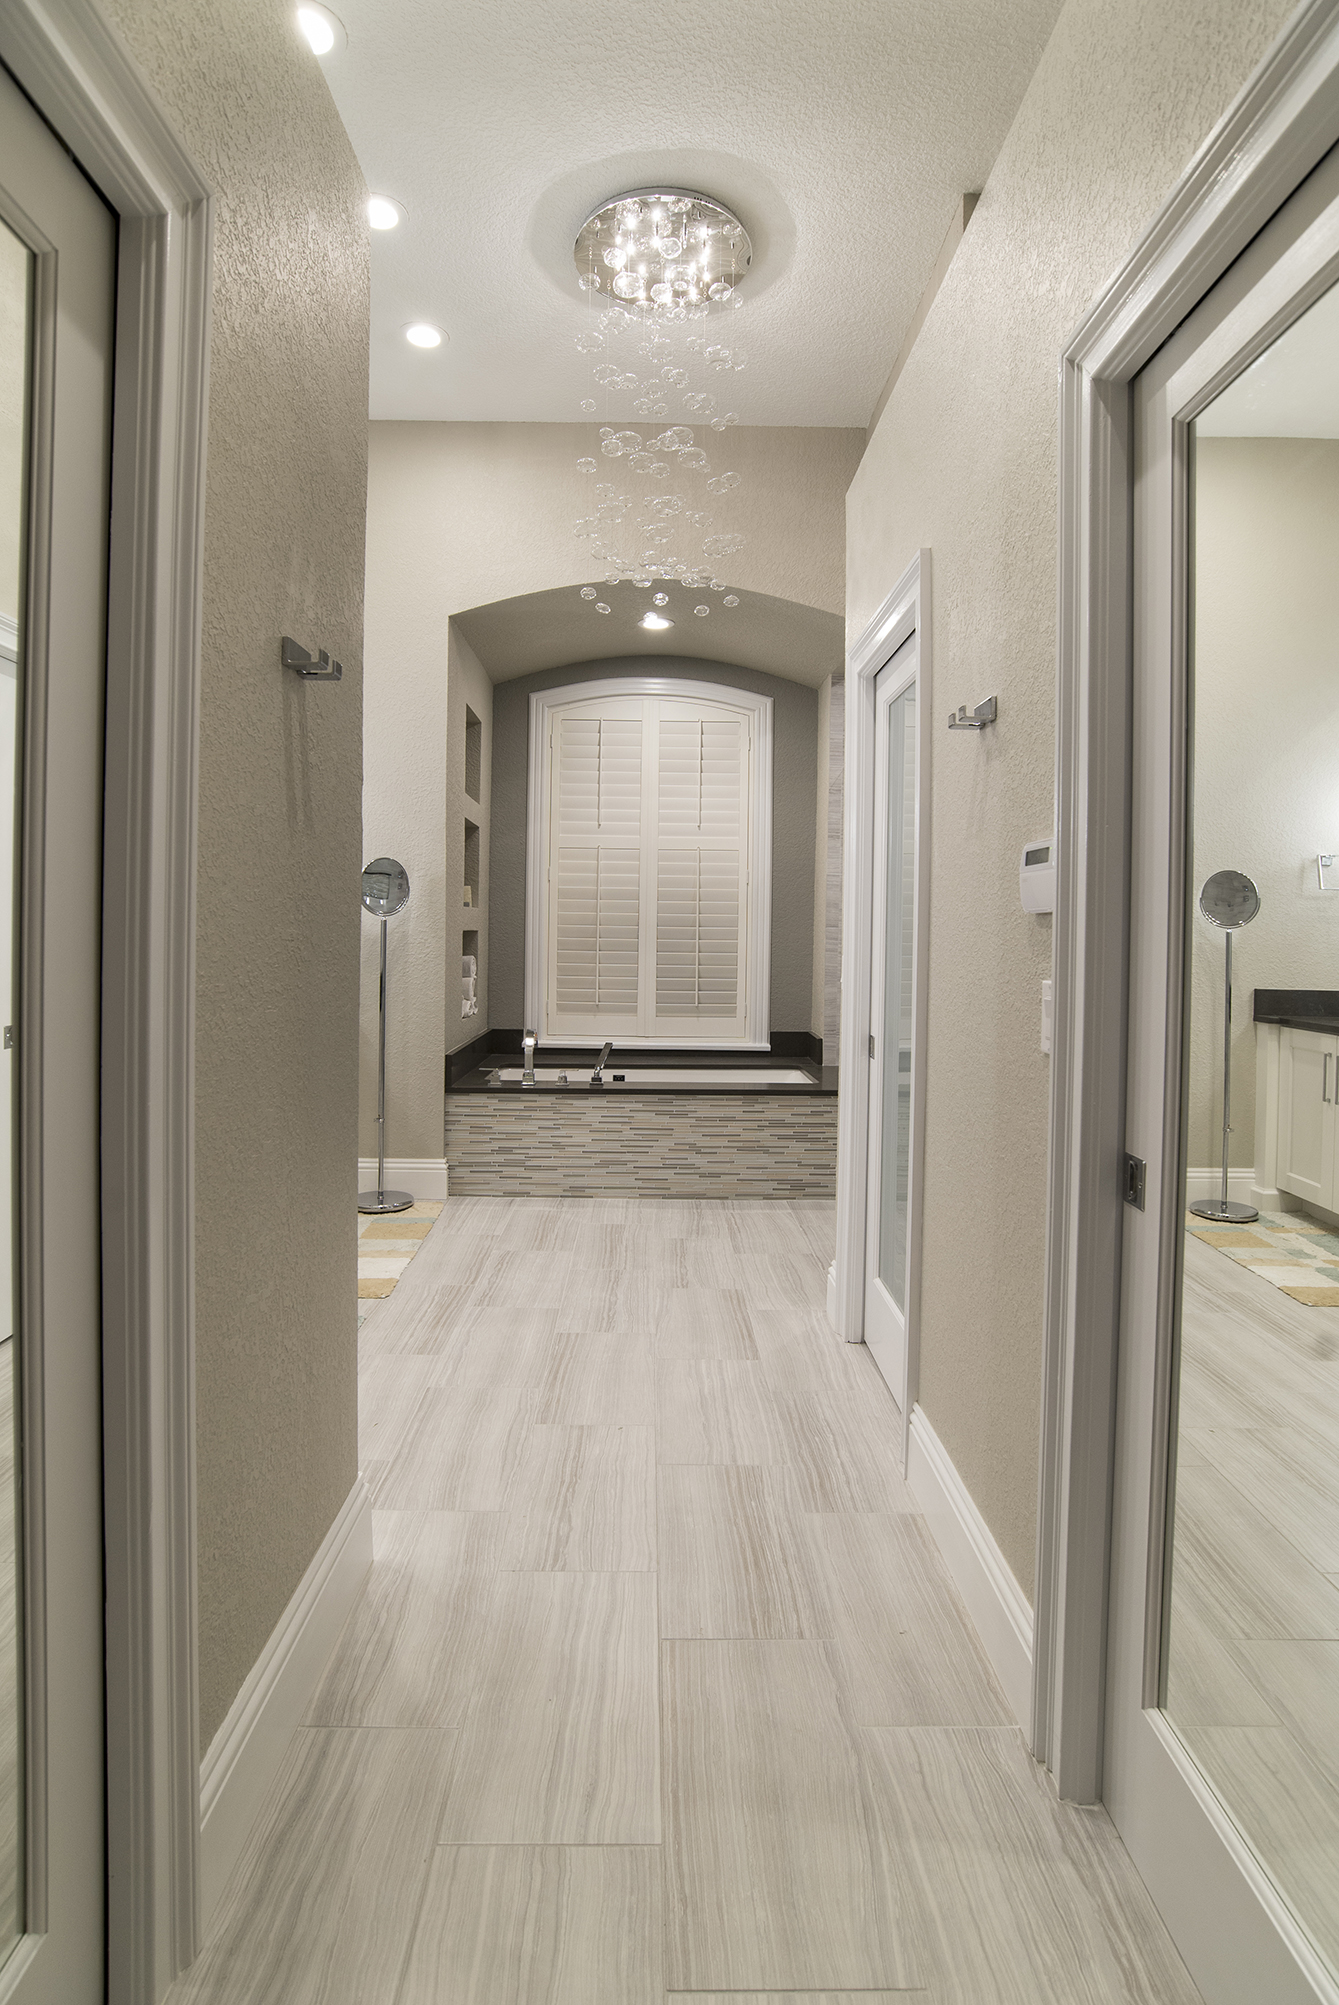 Bathroom Remodeling in Orlando Florida